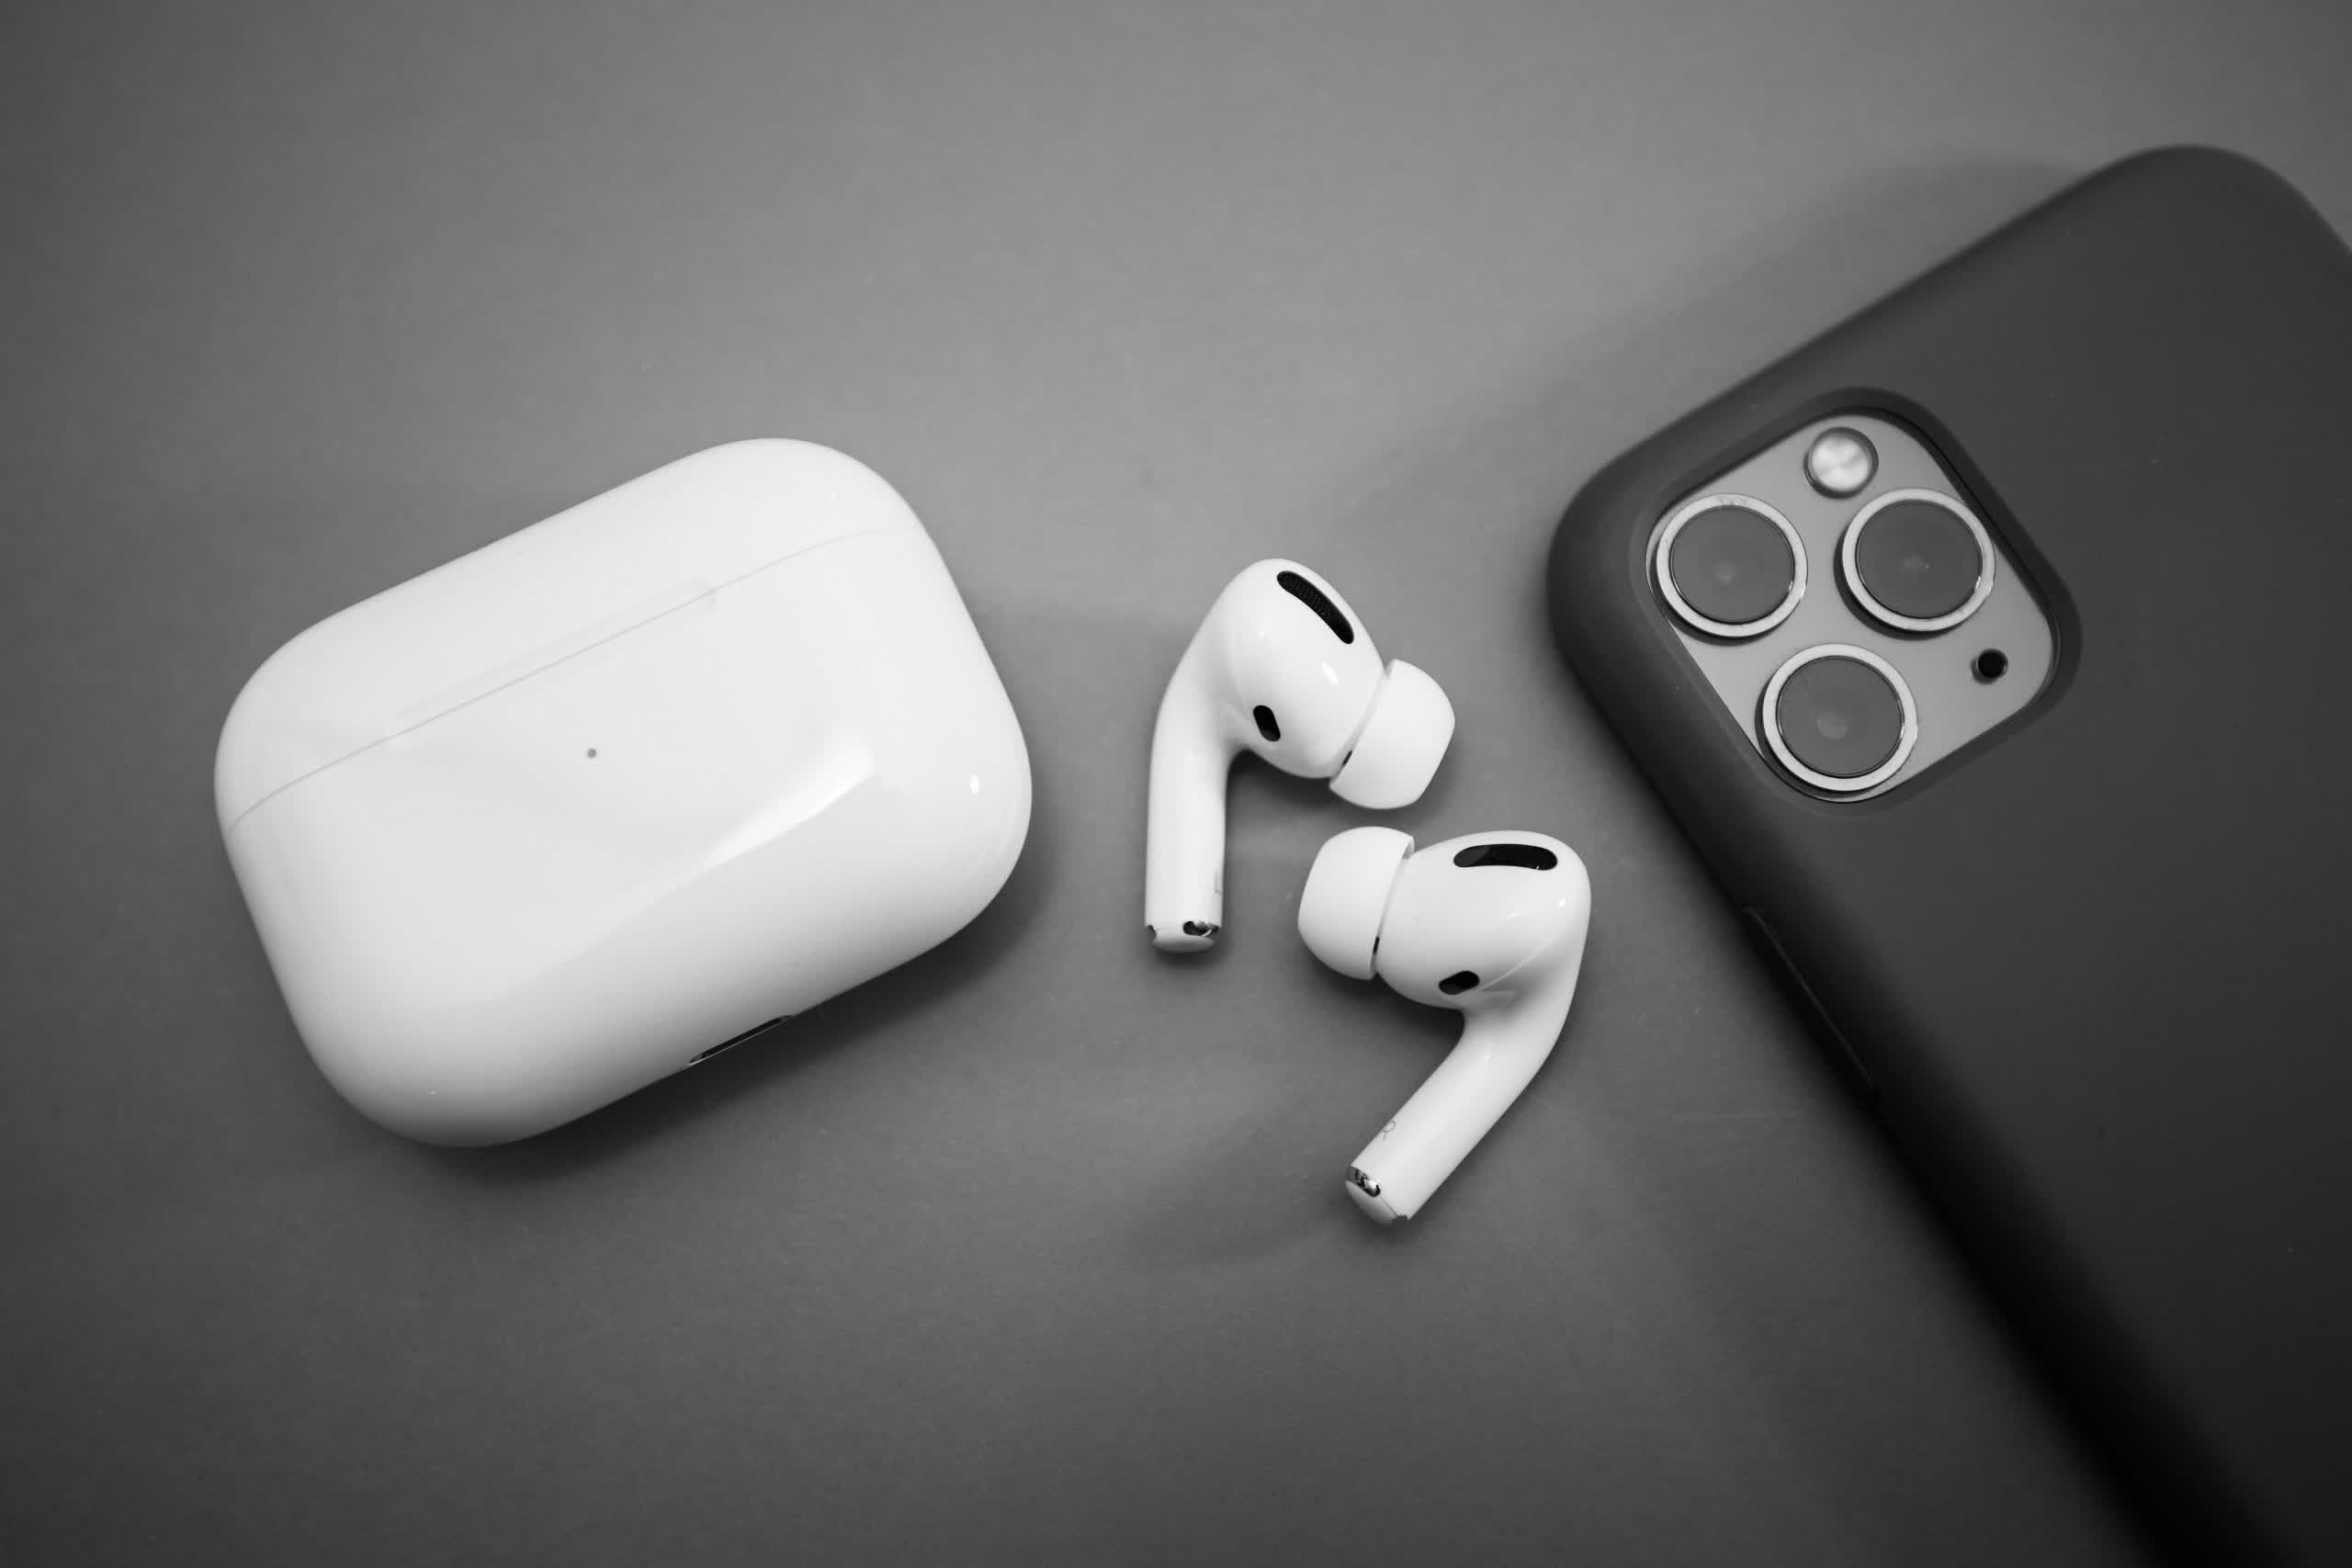 Apple is testing new 'compact' AirPods Pro model without stems